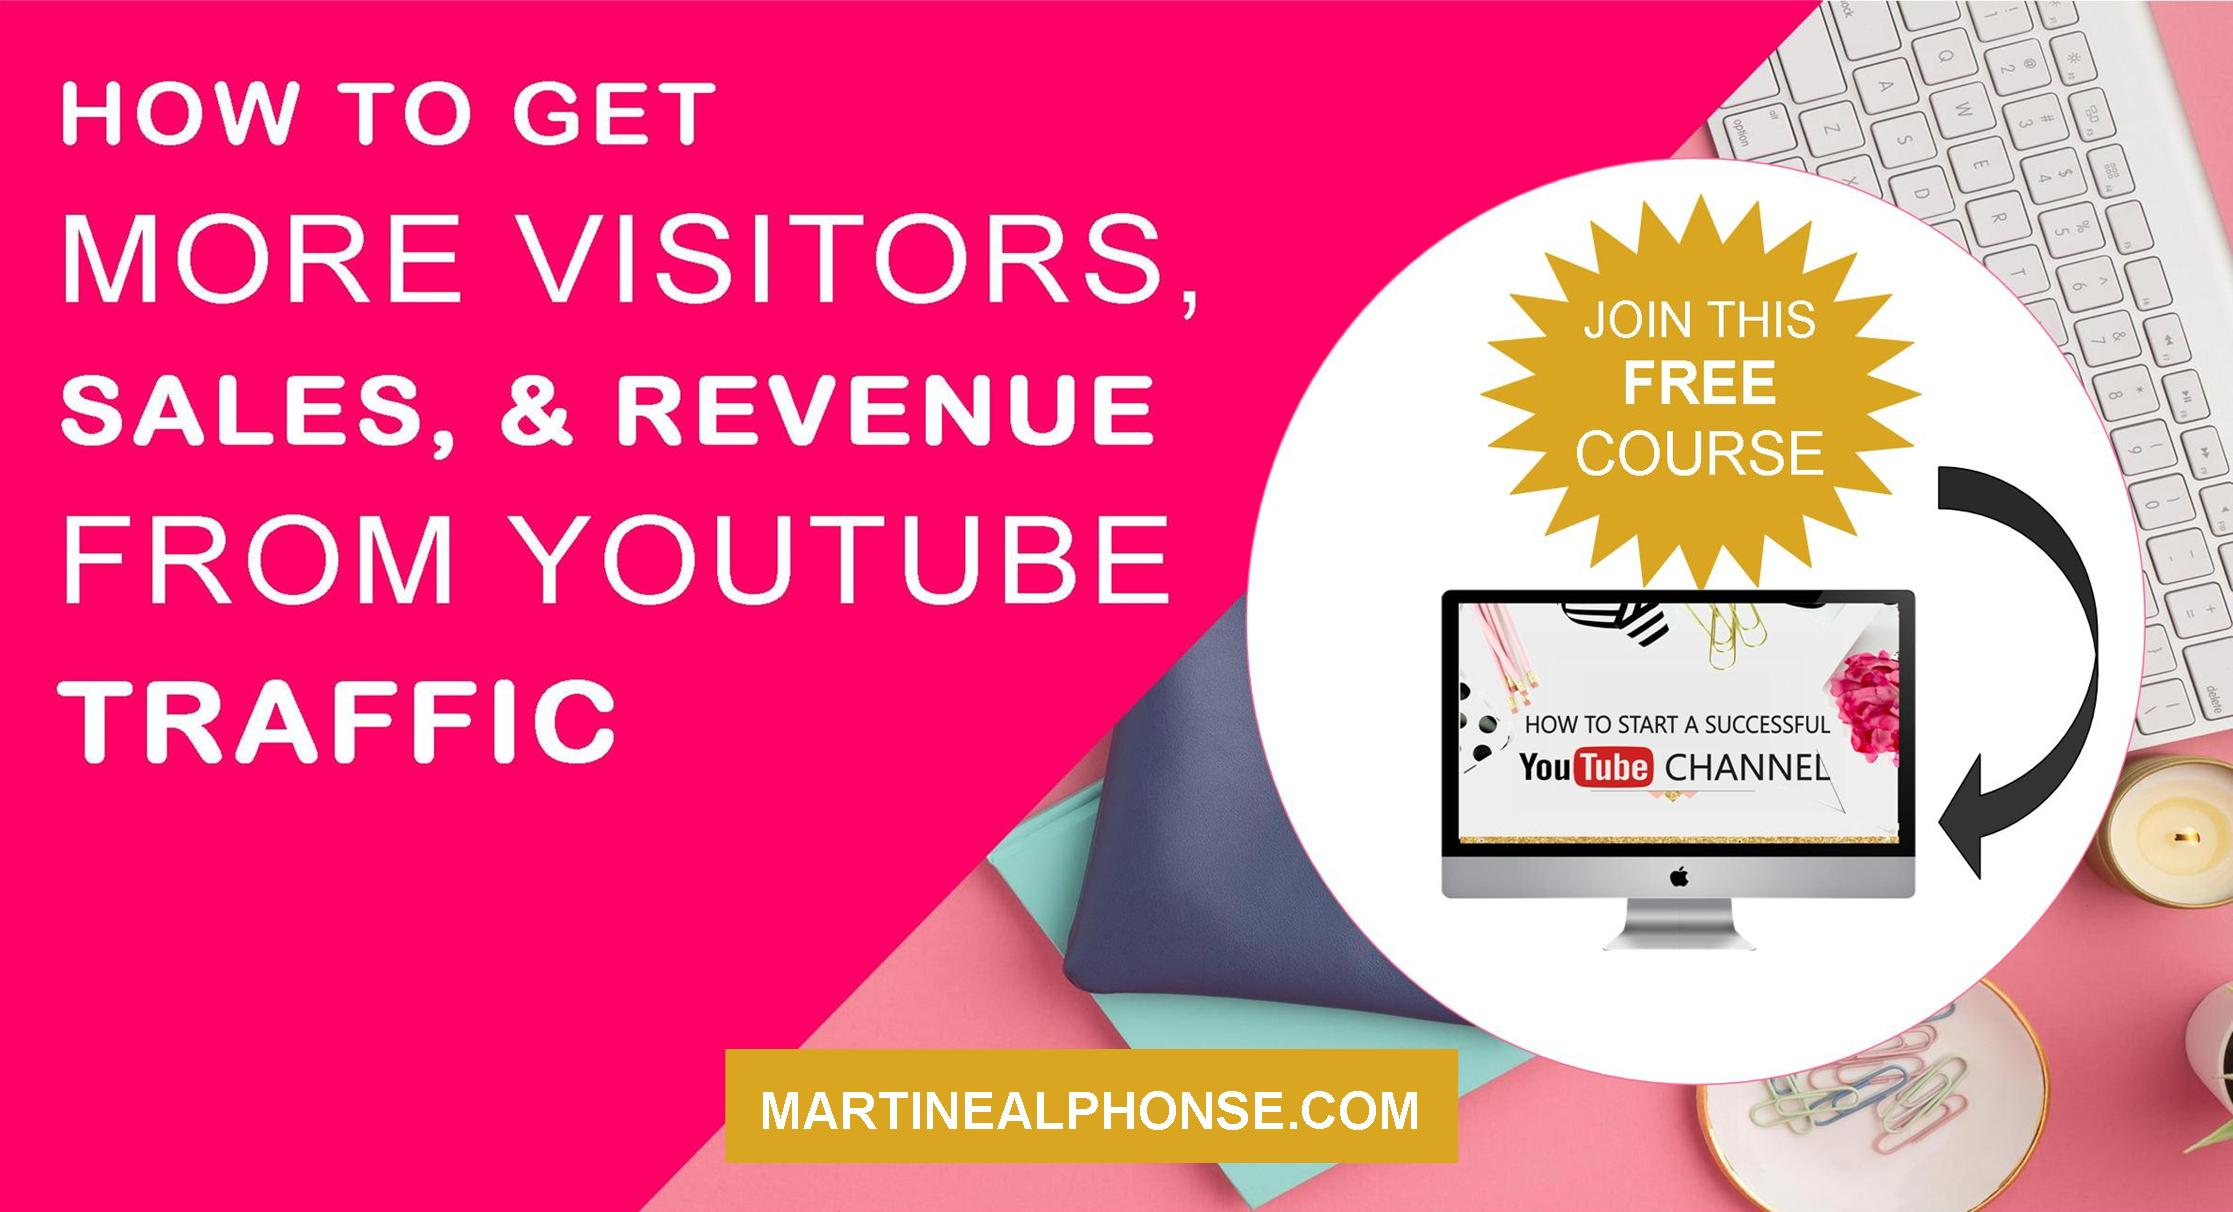 How to Get More Visitors, Sales, & Revenue From YouTube Traffic